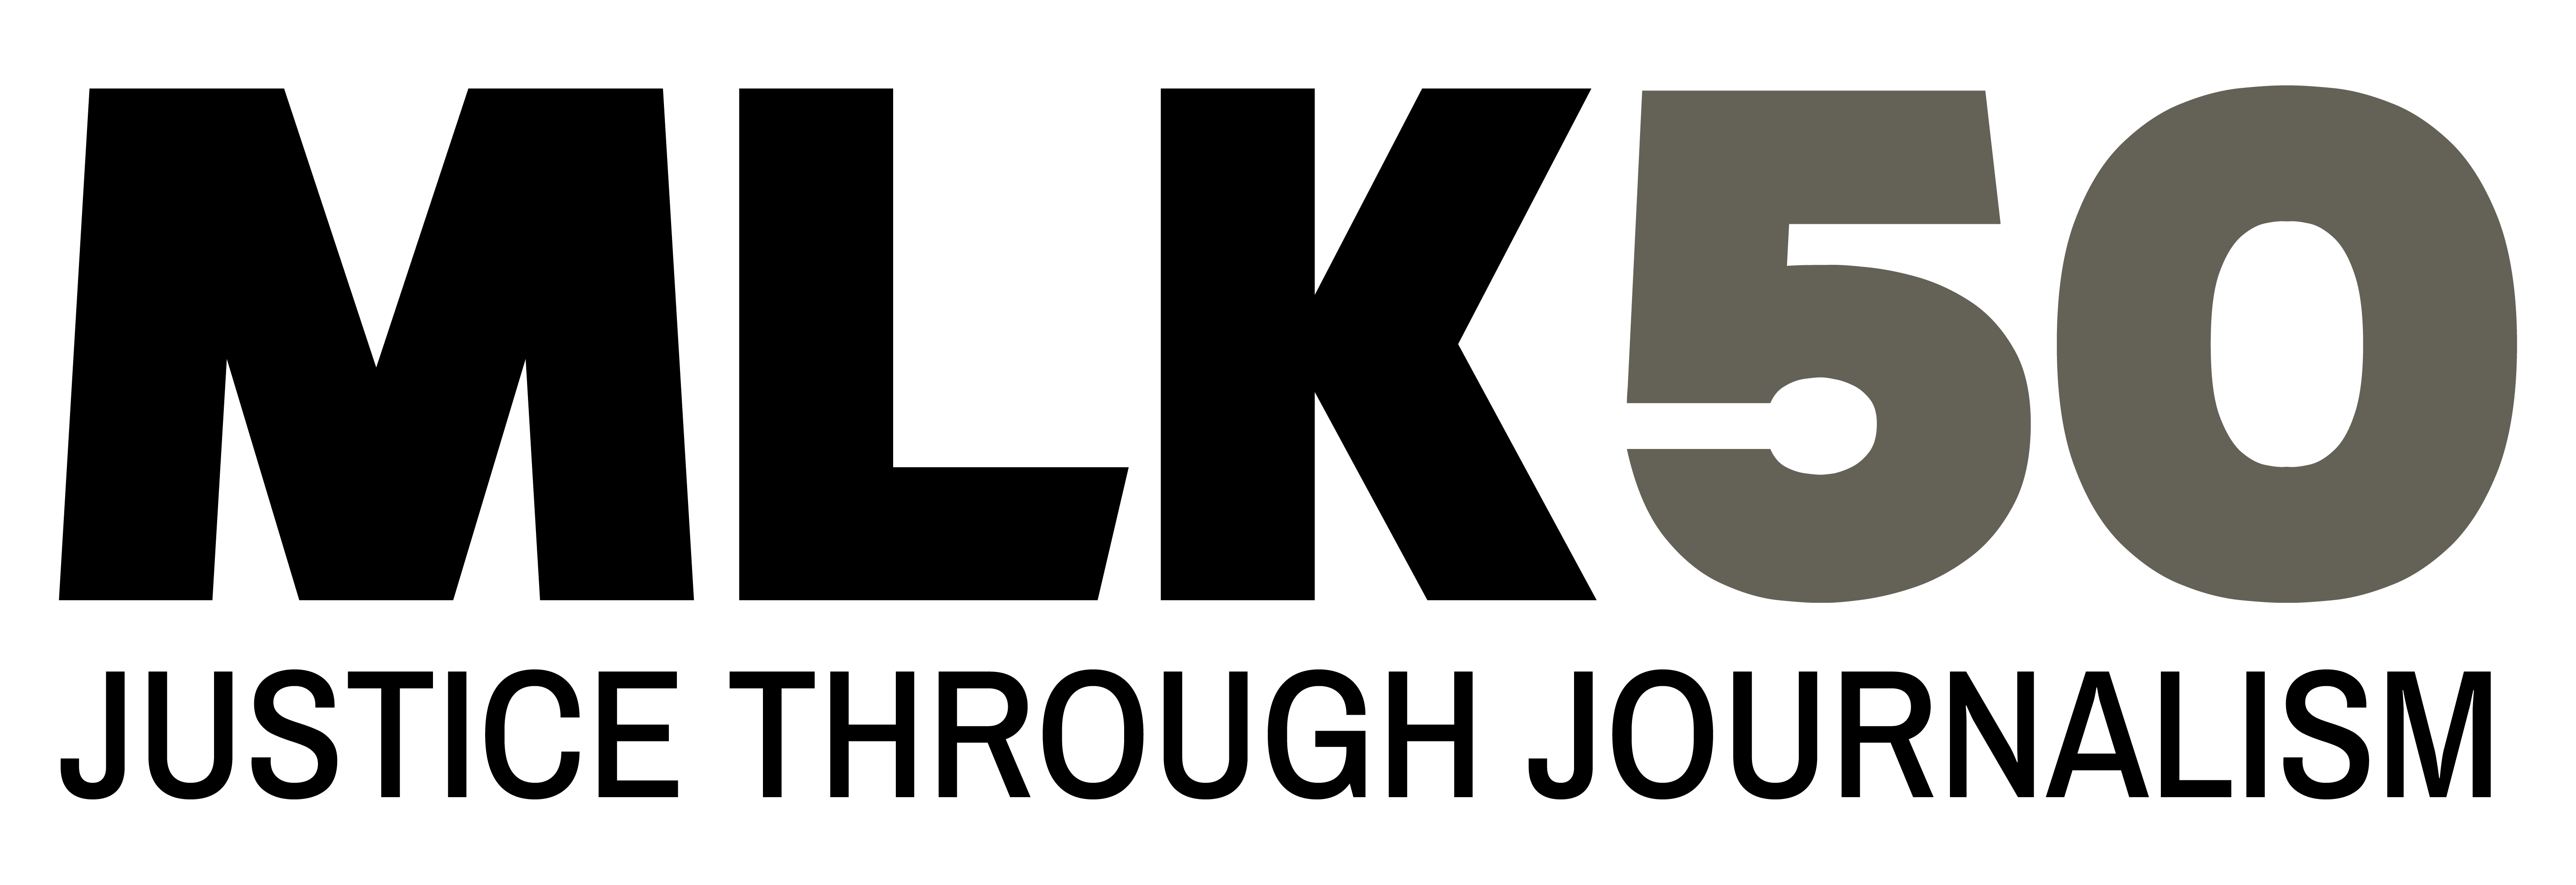 MLK50: Justice Through Journalism